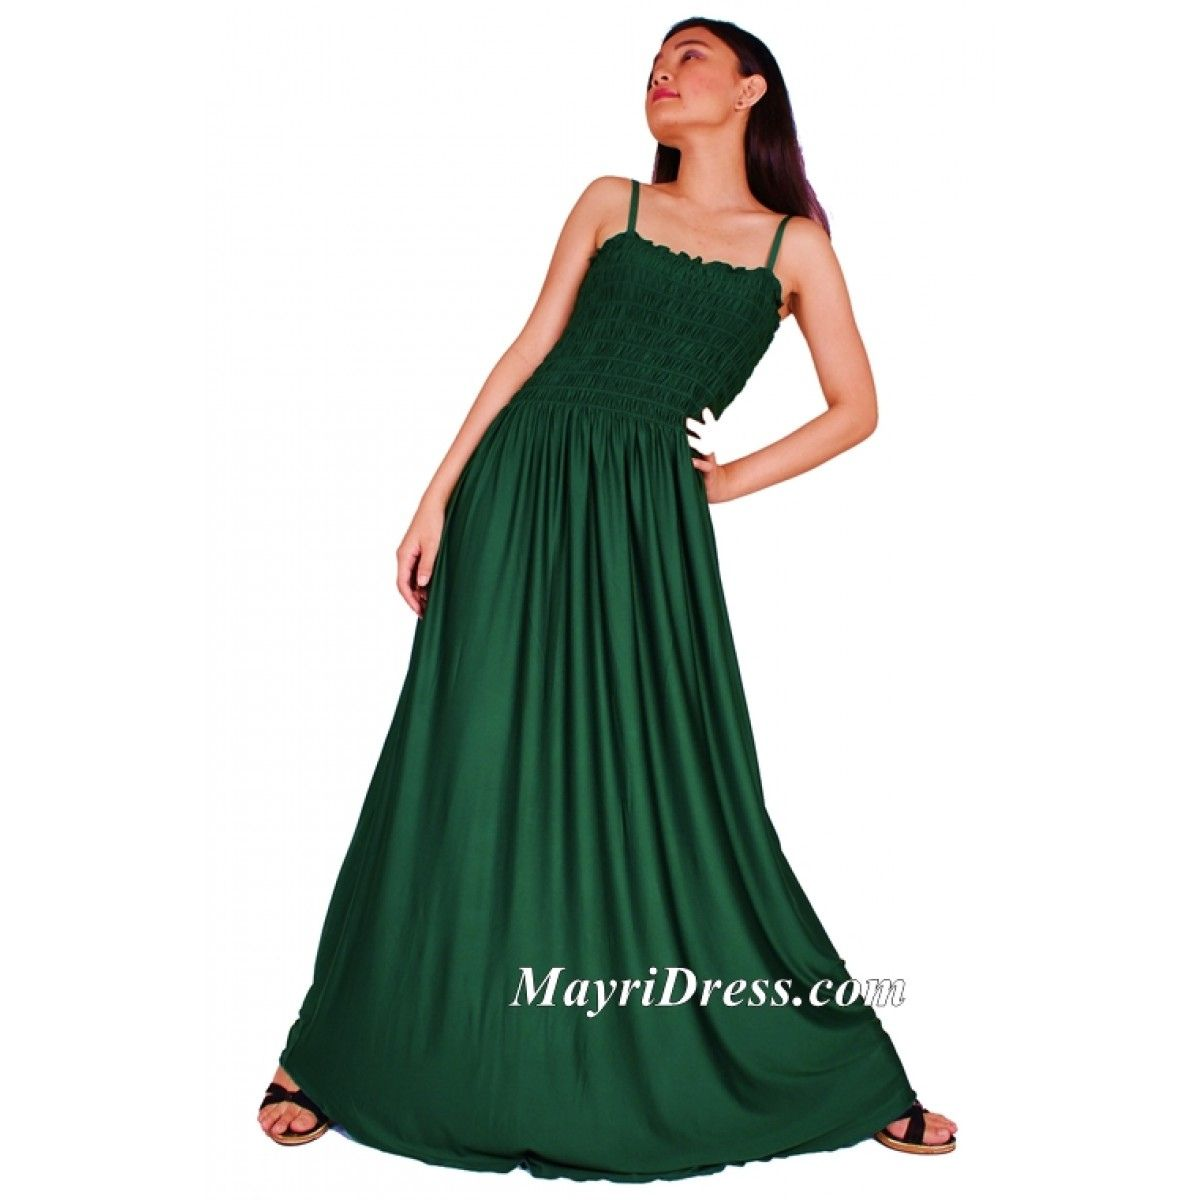 50+ Maxi Dresses for Wedding - Dressy Dresses for Weddings Check ...